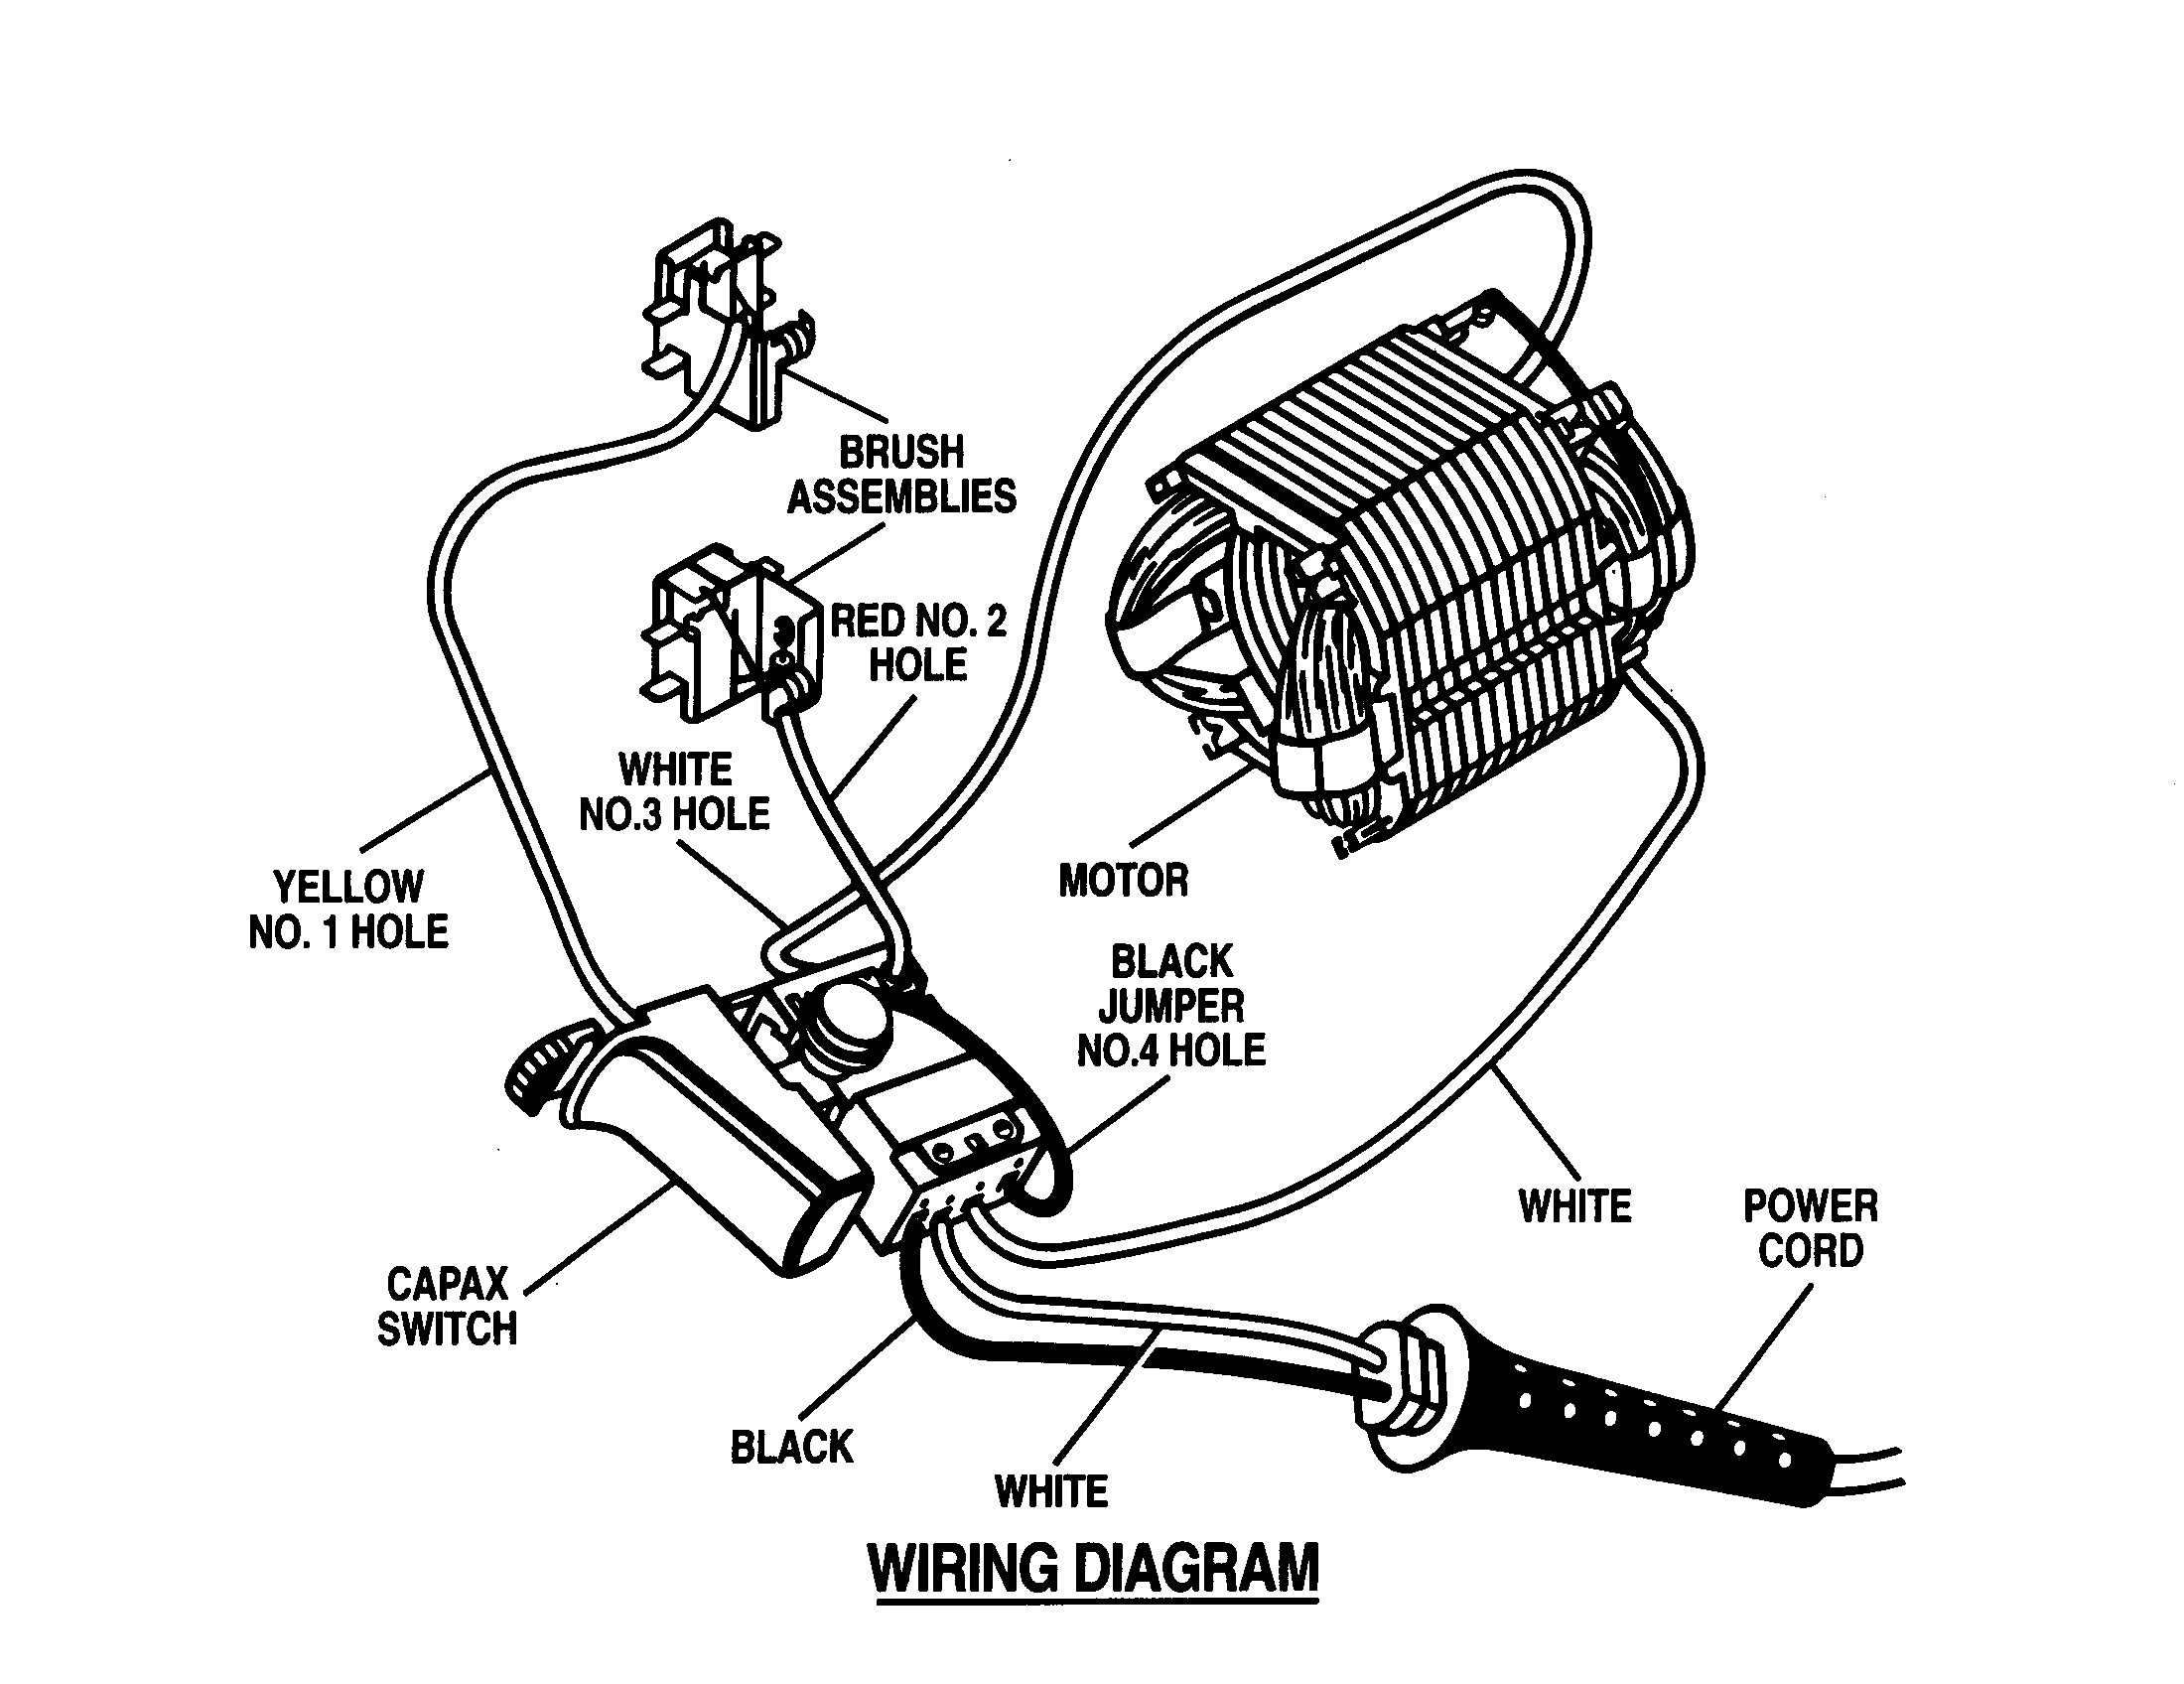 WIRING DIAGRAM Diagram & Parts List for Model 315273990